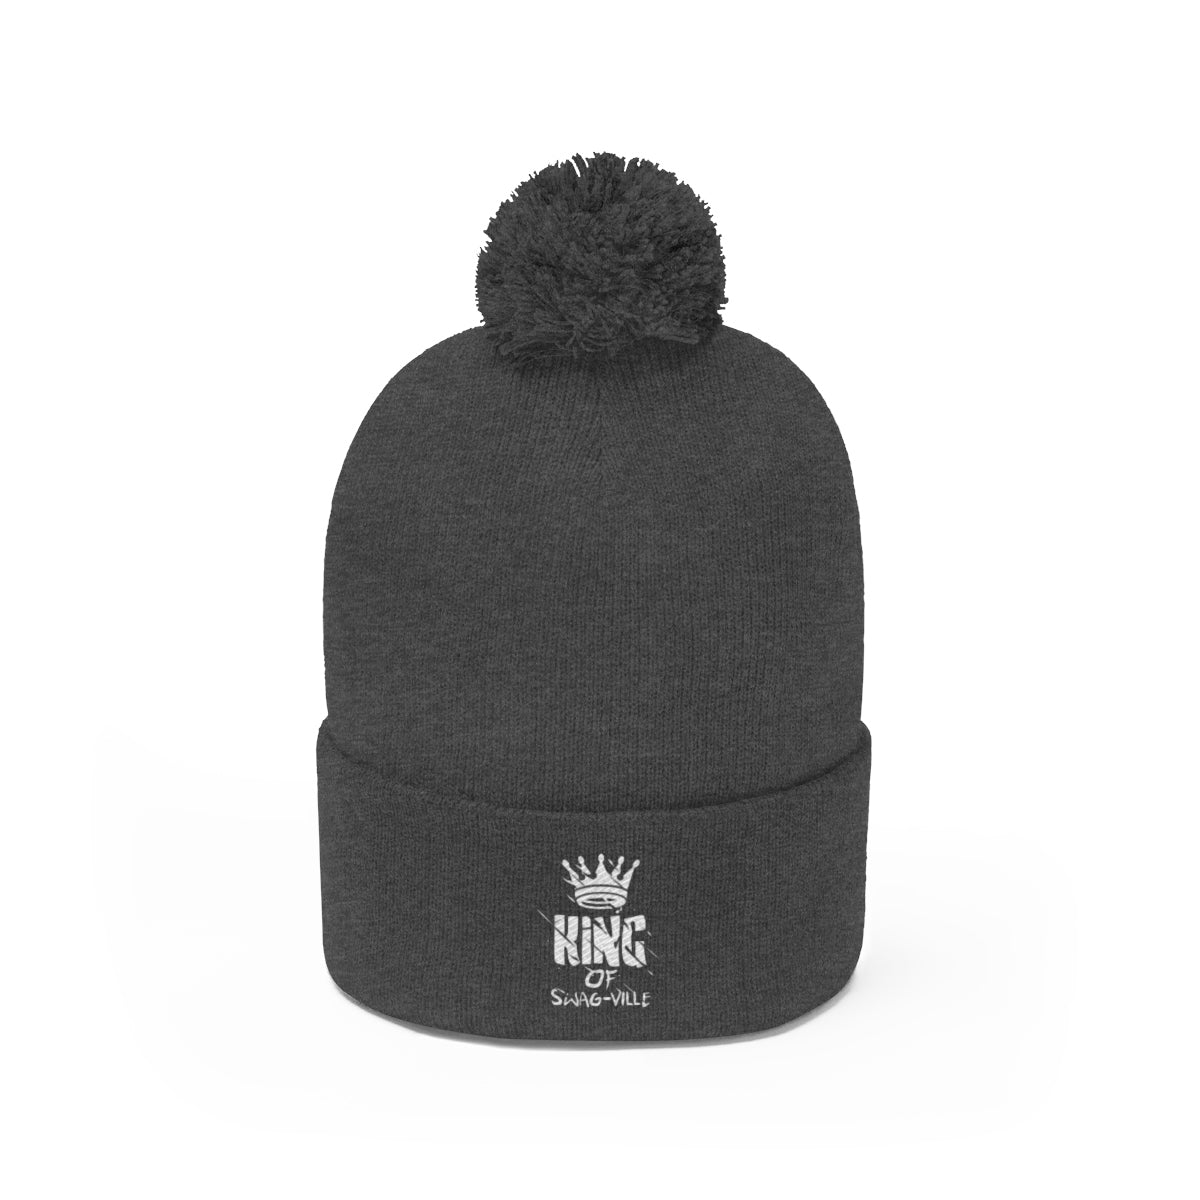 Sassy & Swag Collections - King of Swag-ville Men's Pom Pom Beanie